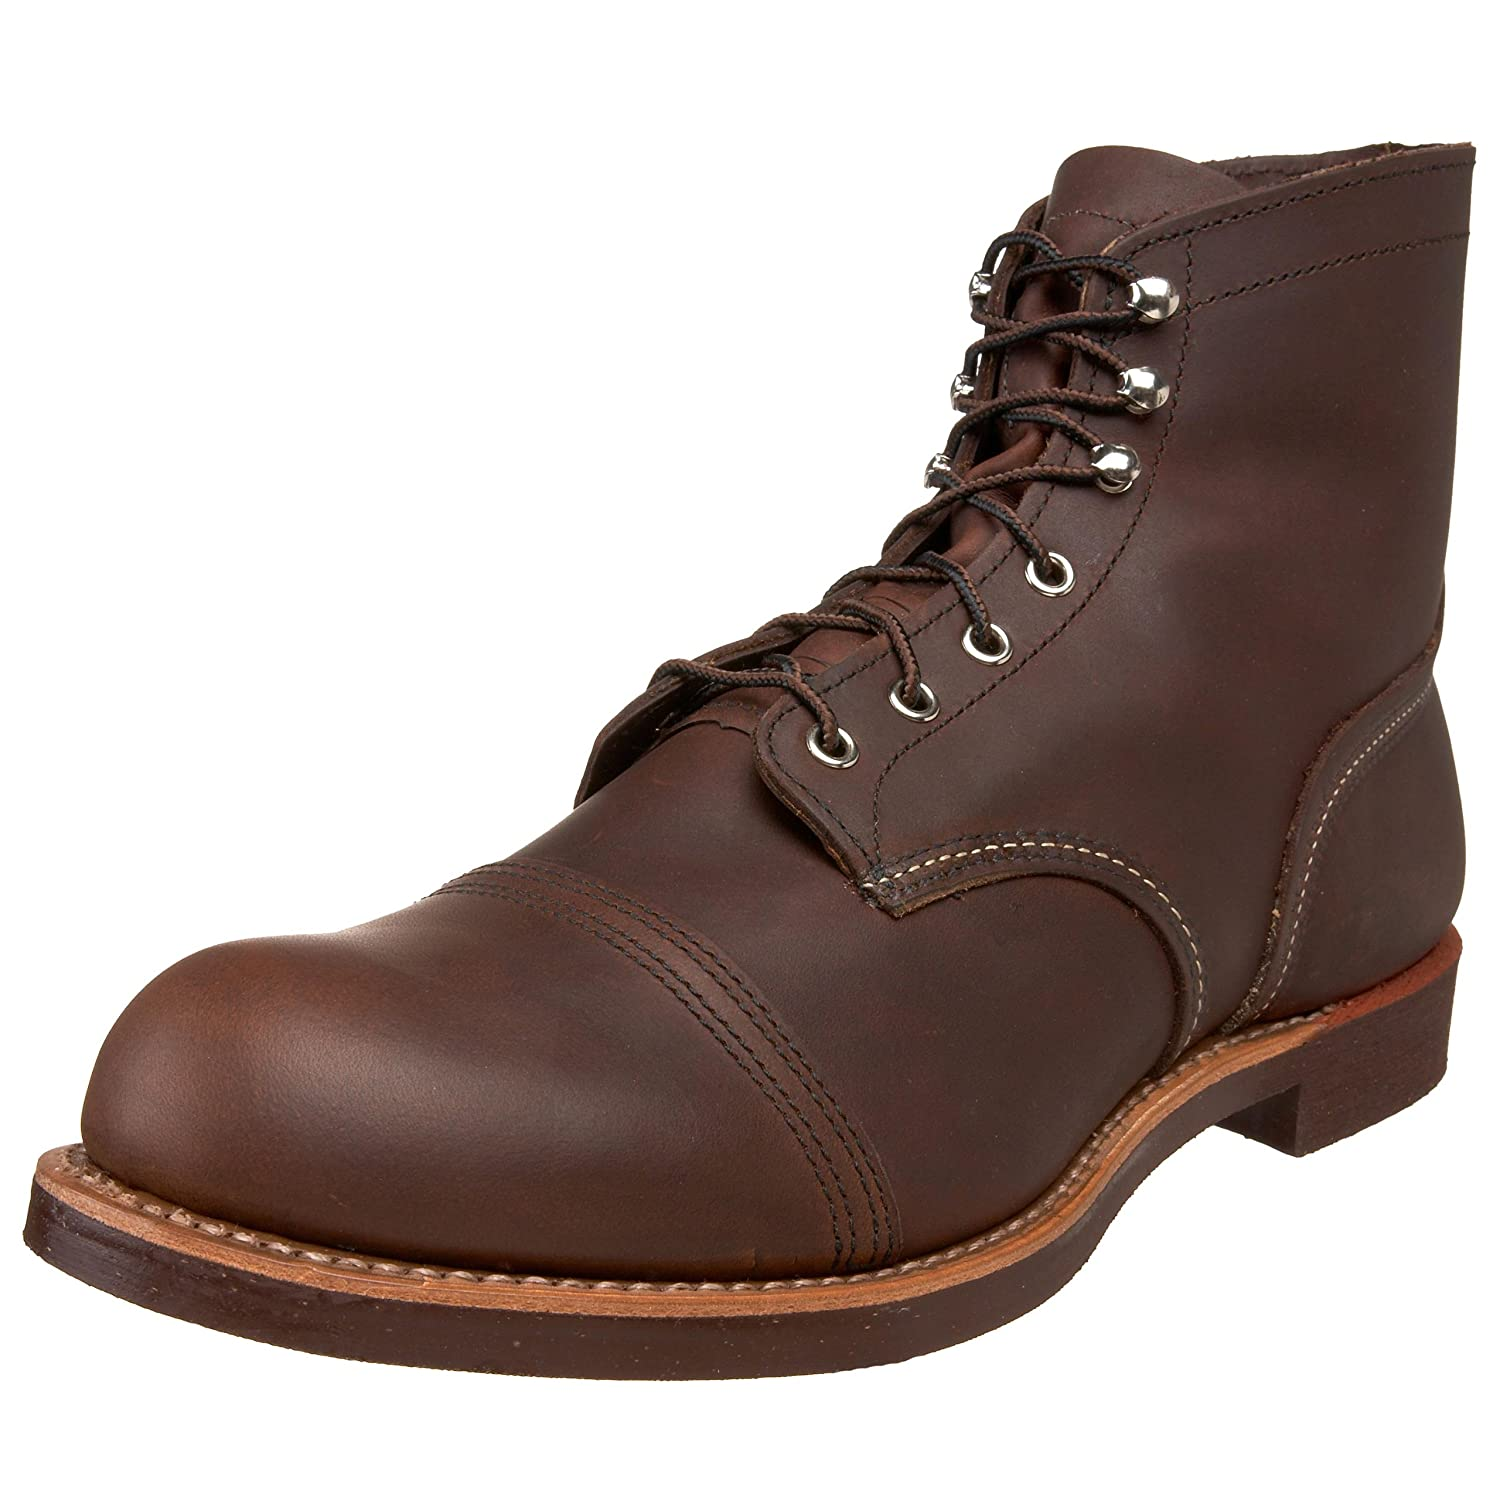 Victorian Men's Shoes & Boots- Lace Up, Spats, Chelsea, Riding Red Wing Heritage Iron Ranger 6-Inch Boot $239.96 AT vintagedancer.com